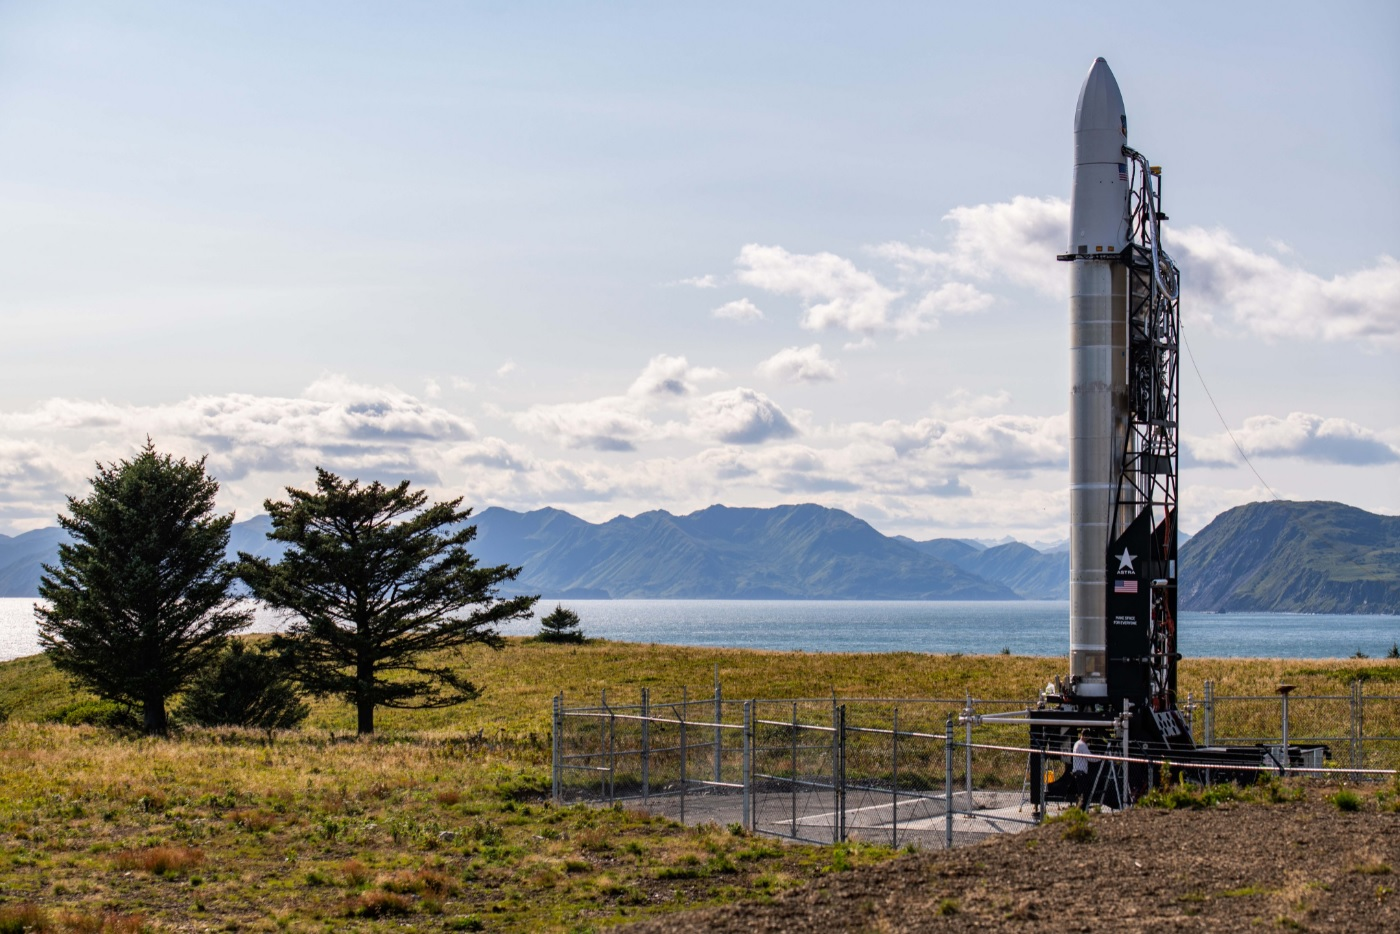 Astra completes investigation and schedules next orbital launch attempt